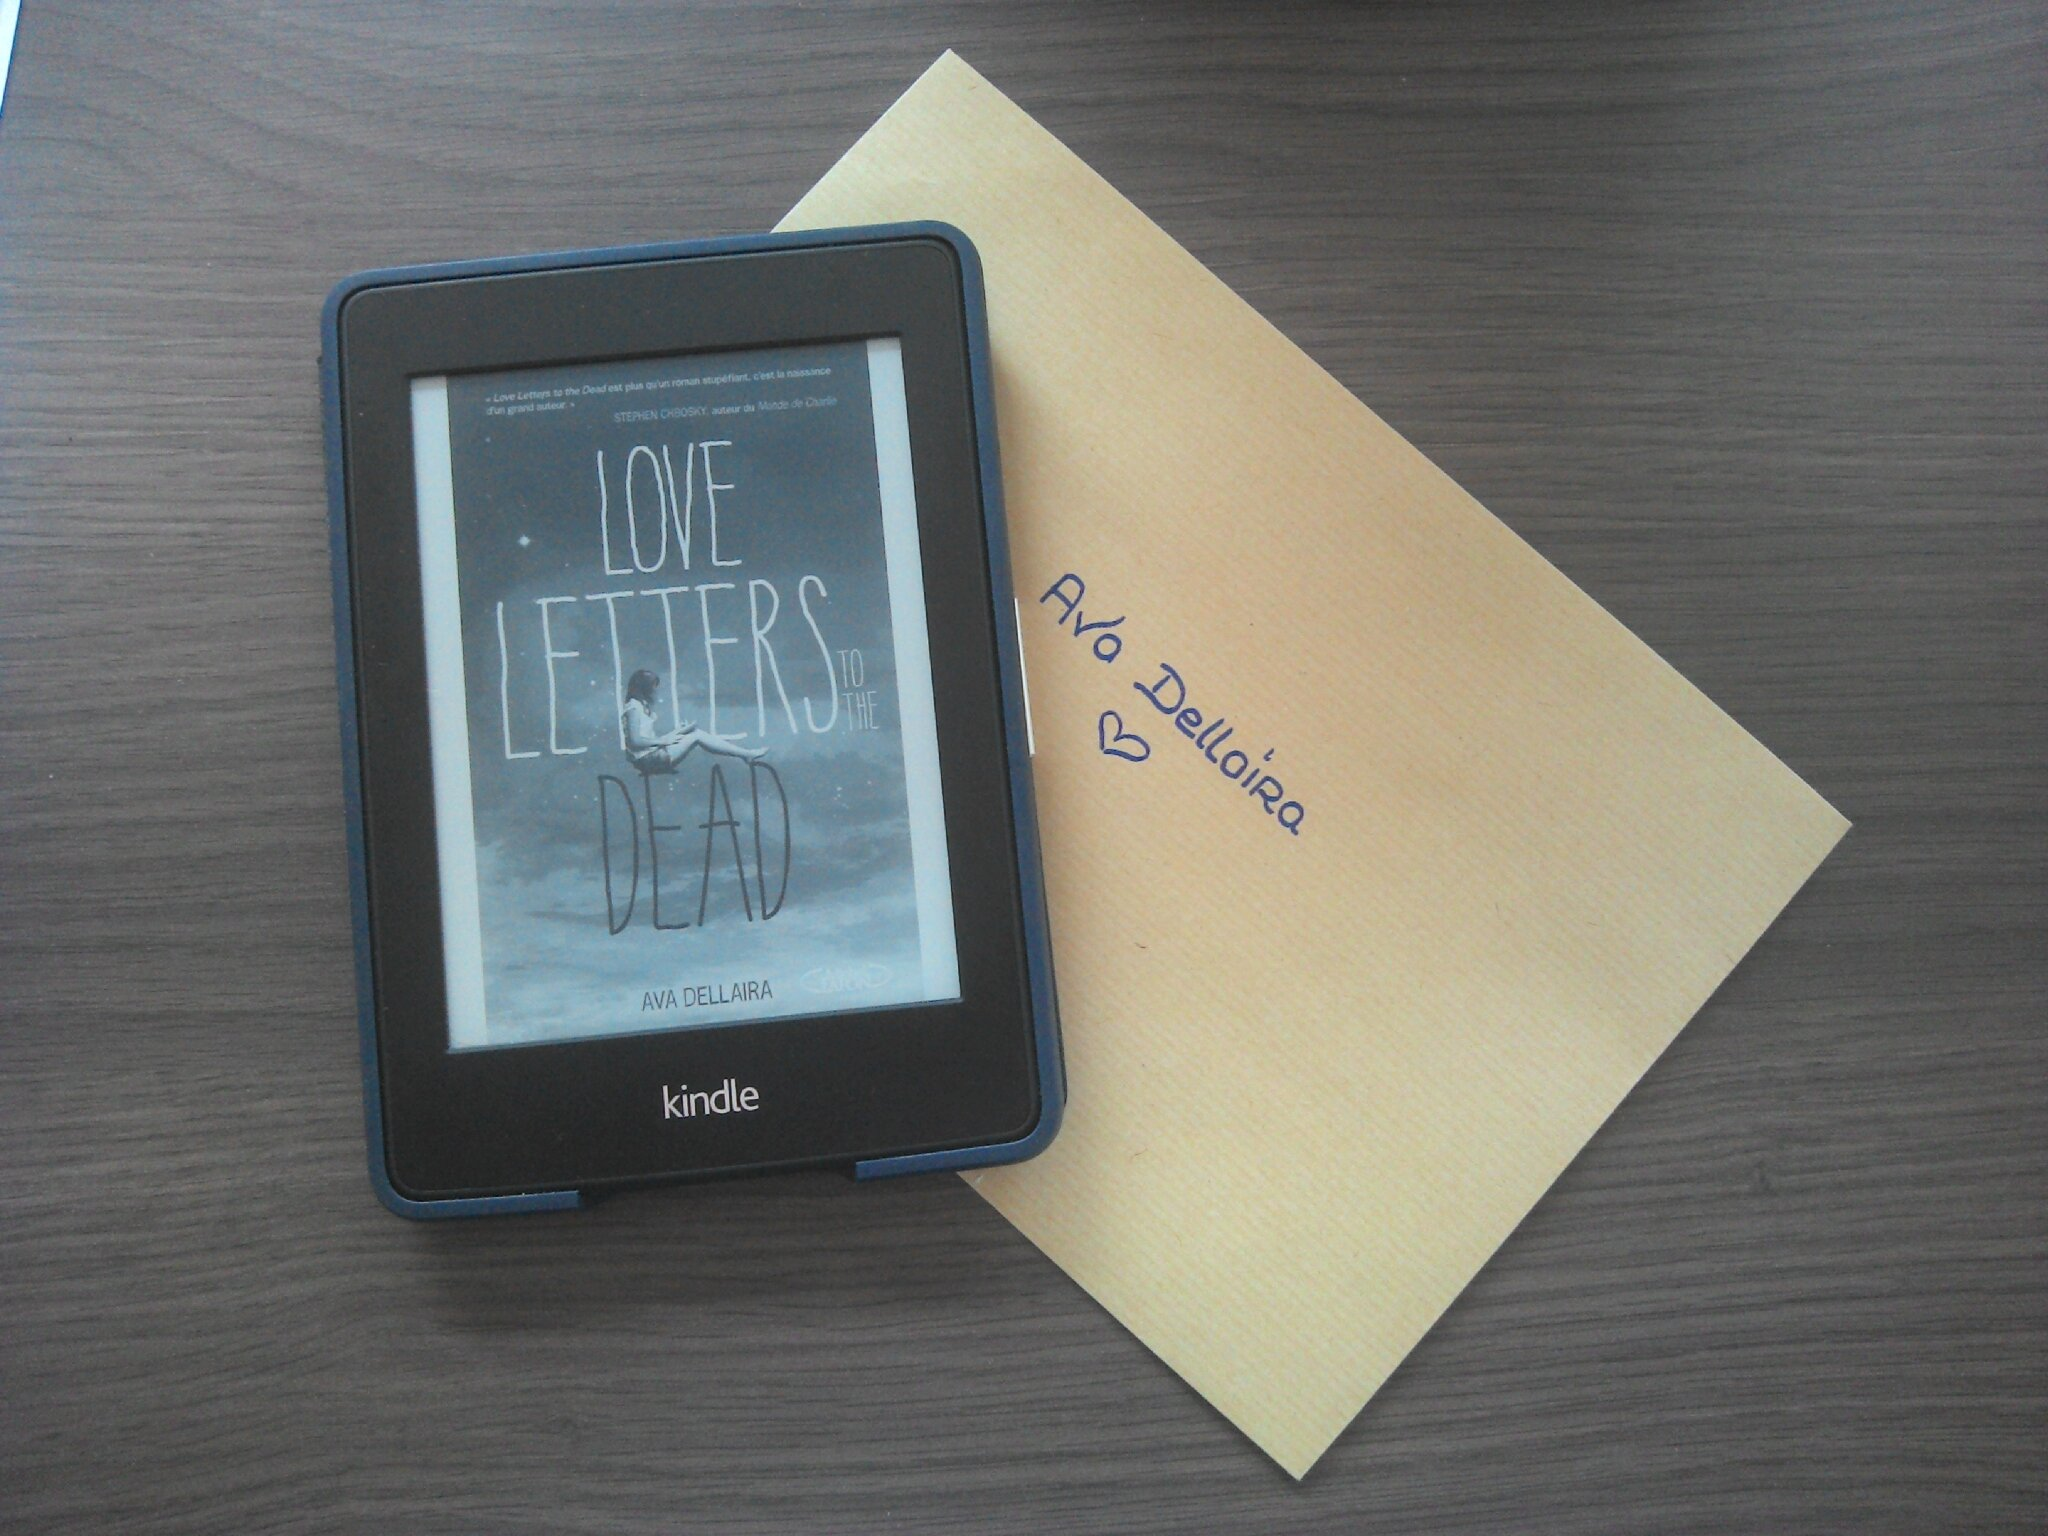 Love letters to the dead-Ava Dellaira